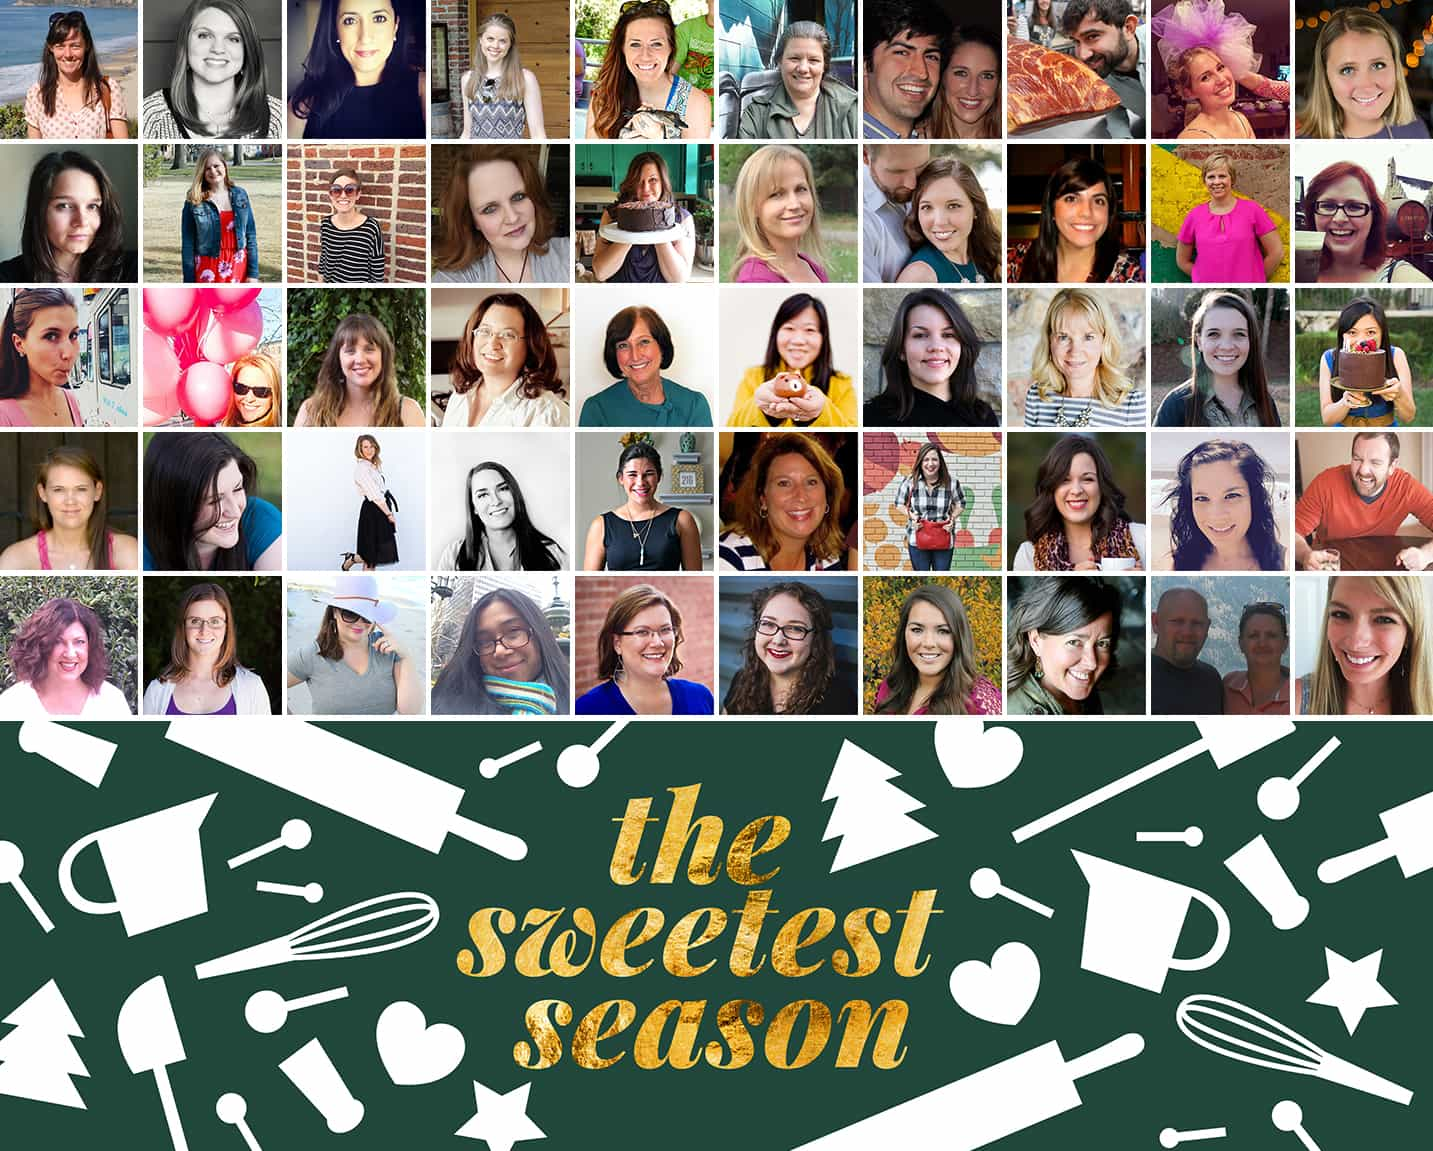 The Sweetest Season 2015 Sweetest Cookie Giveaway // The Speckled Palate